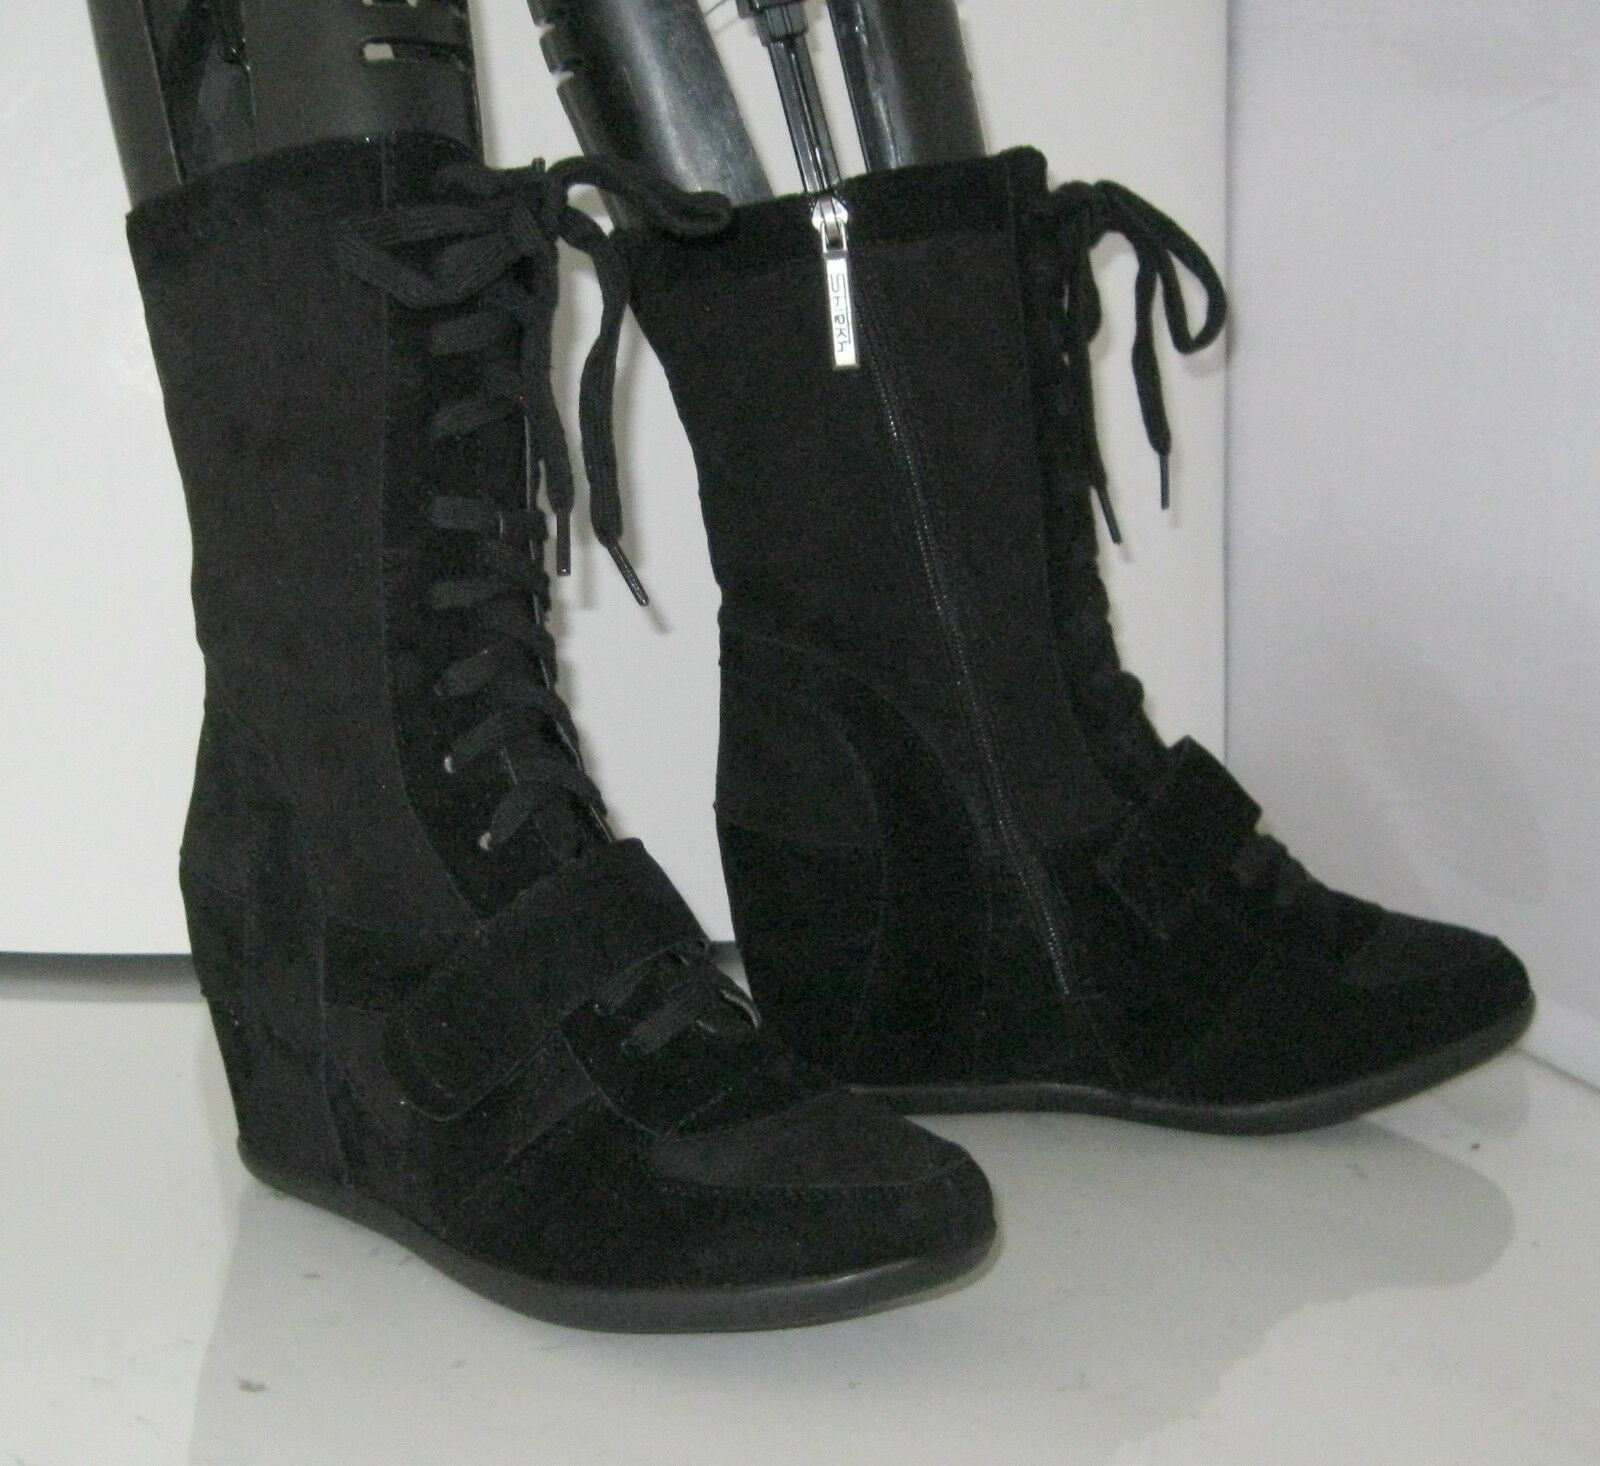 New Black 3.5 High Hidden Wedge Heel Round Toe Mid-Calf Boots Lace Up Size 8.5